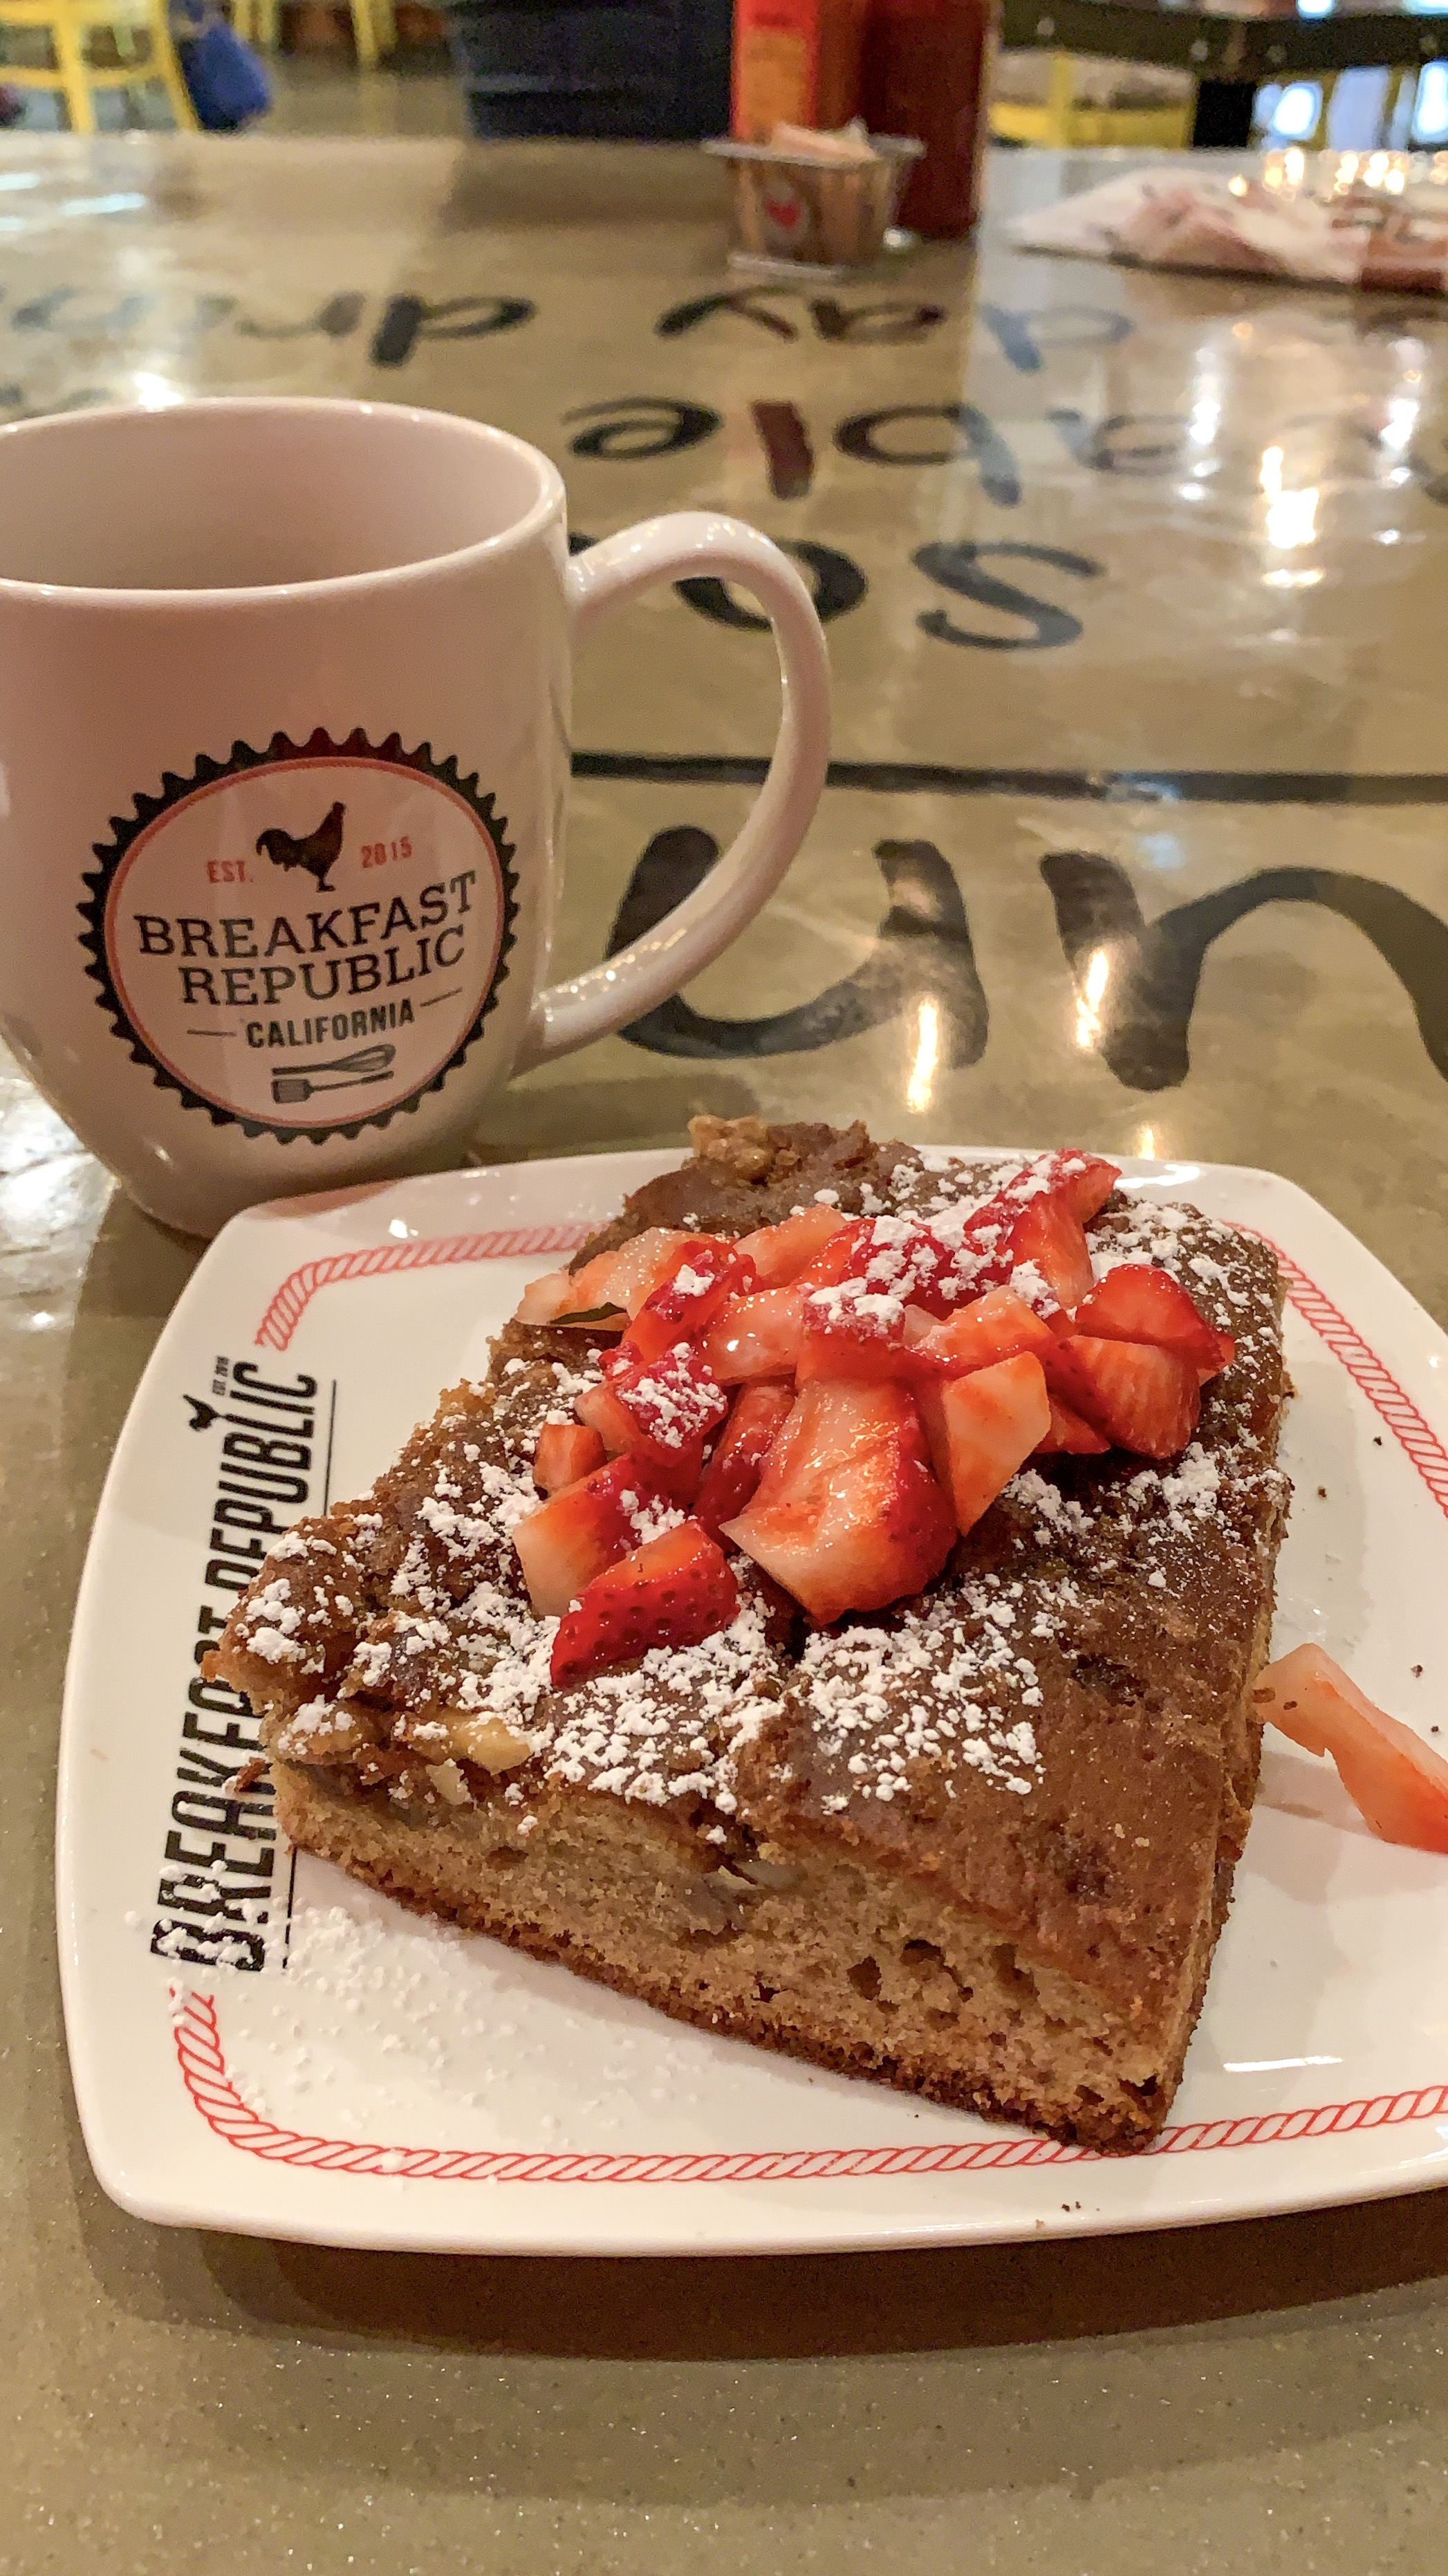 Breakfast republics signature coffee cake. Great way to start off brunch!